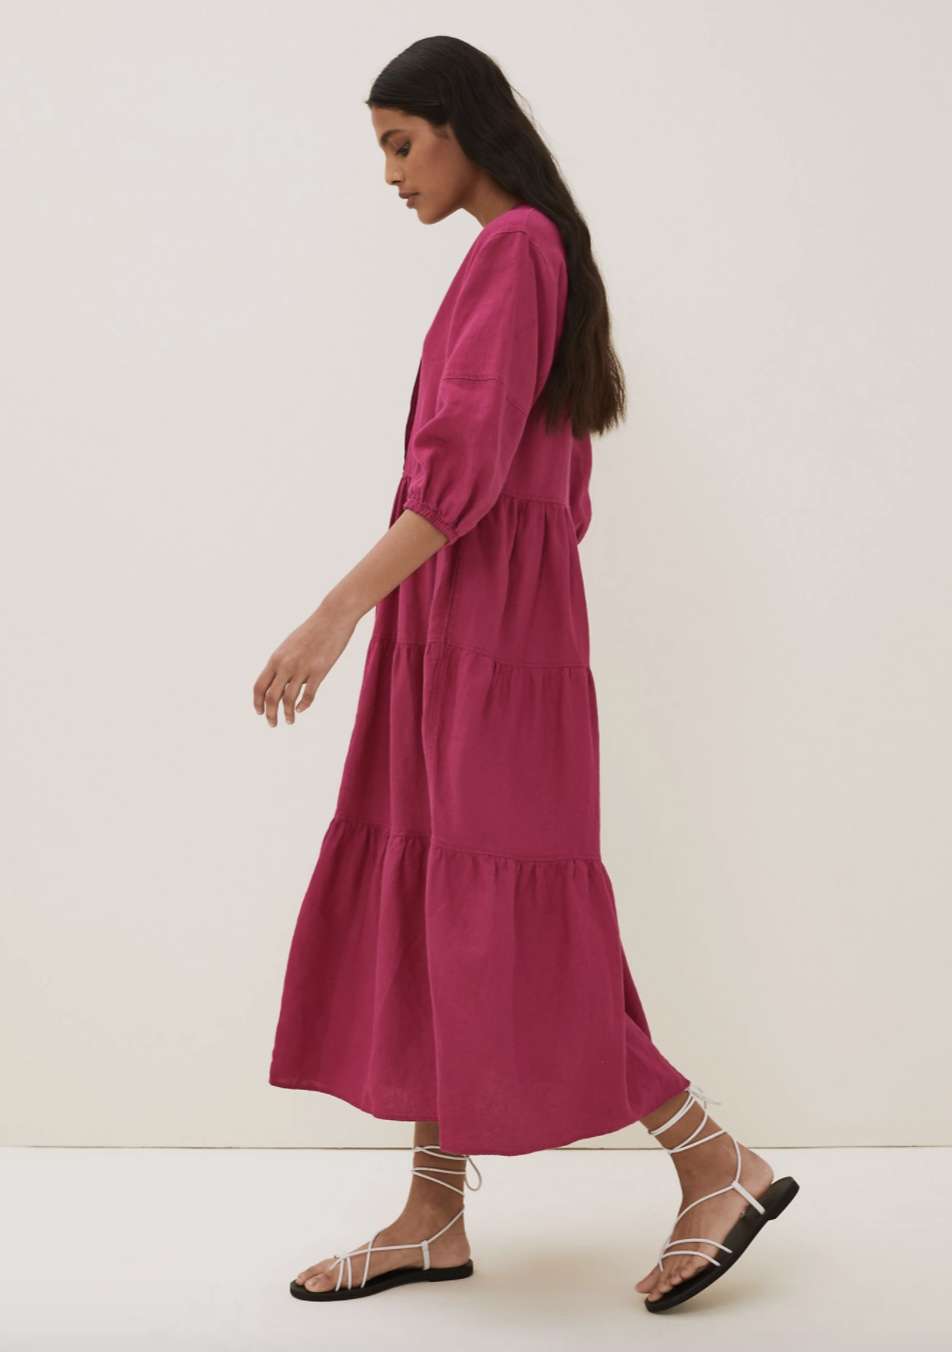 Marks & Spencer's Midaxi Linen Dress boasts tiered detail, puff 3.4 sleeves with cuff detail for extra volume.  (Marks and Spencer)